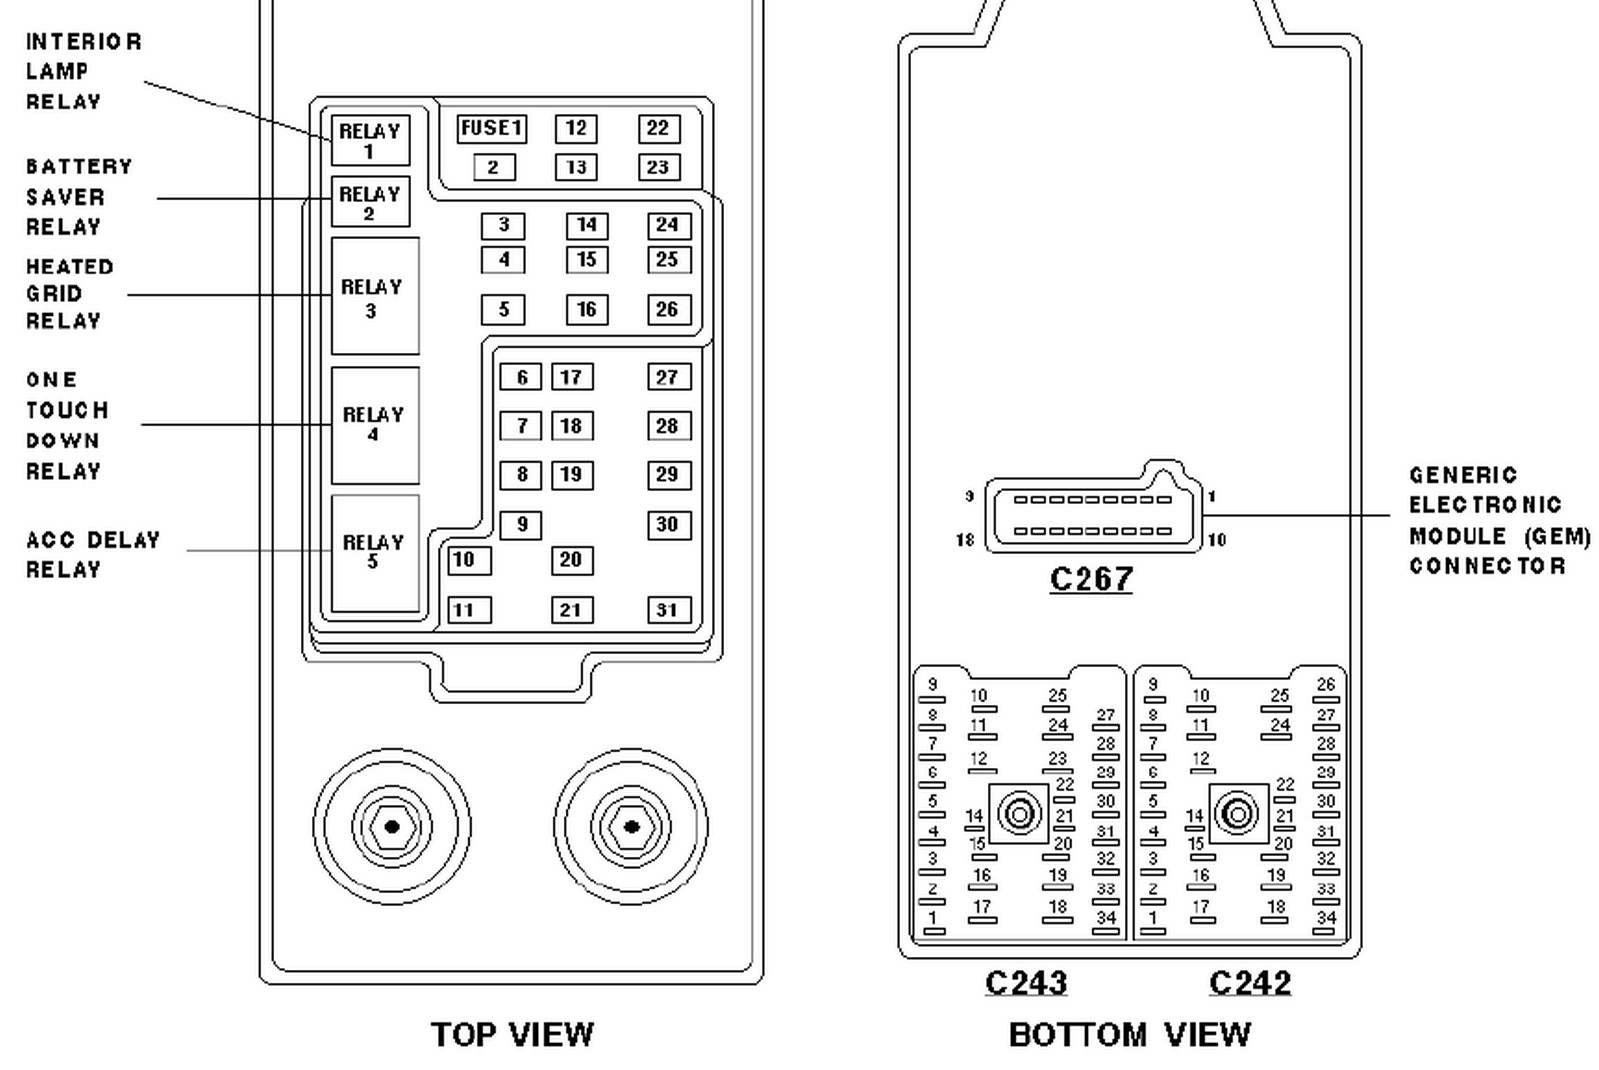 1997 Fuse Box Diagram Wiring Library 2001 Ford Windstar Expedition